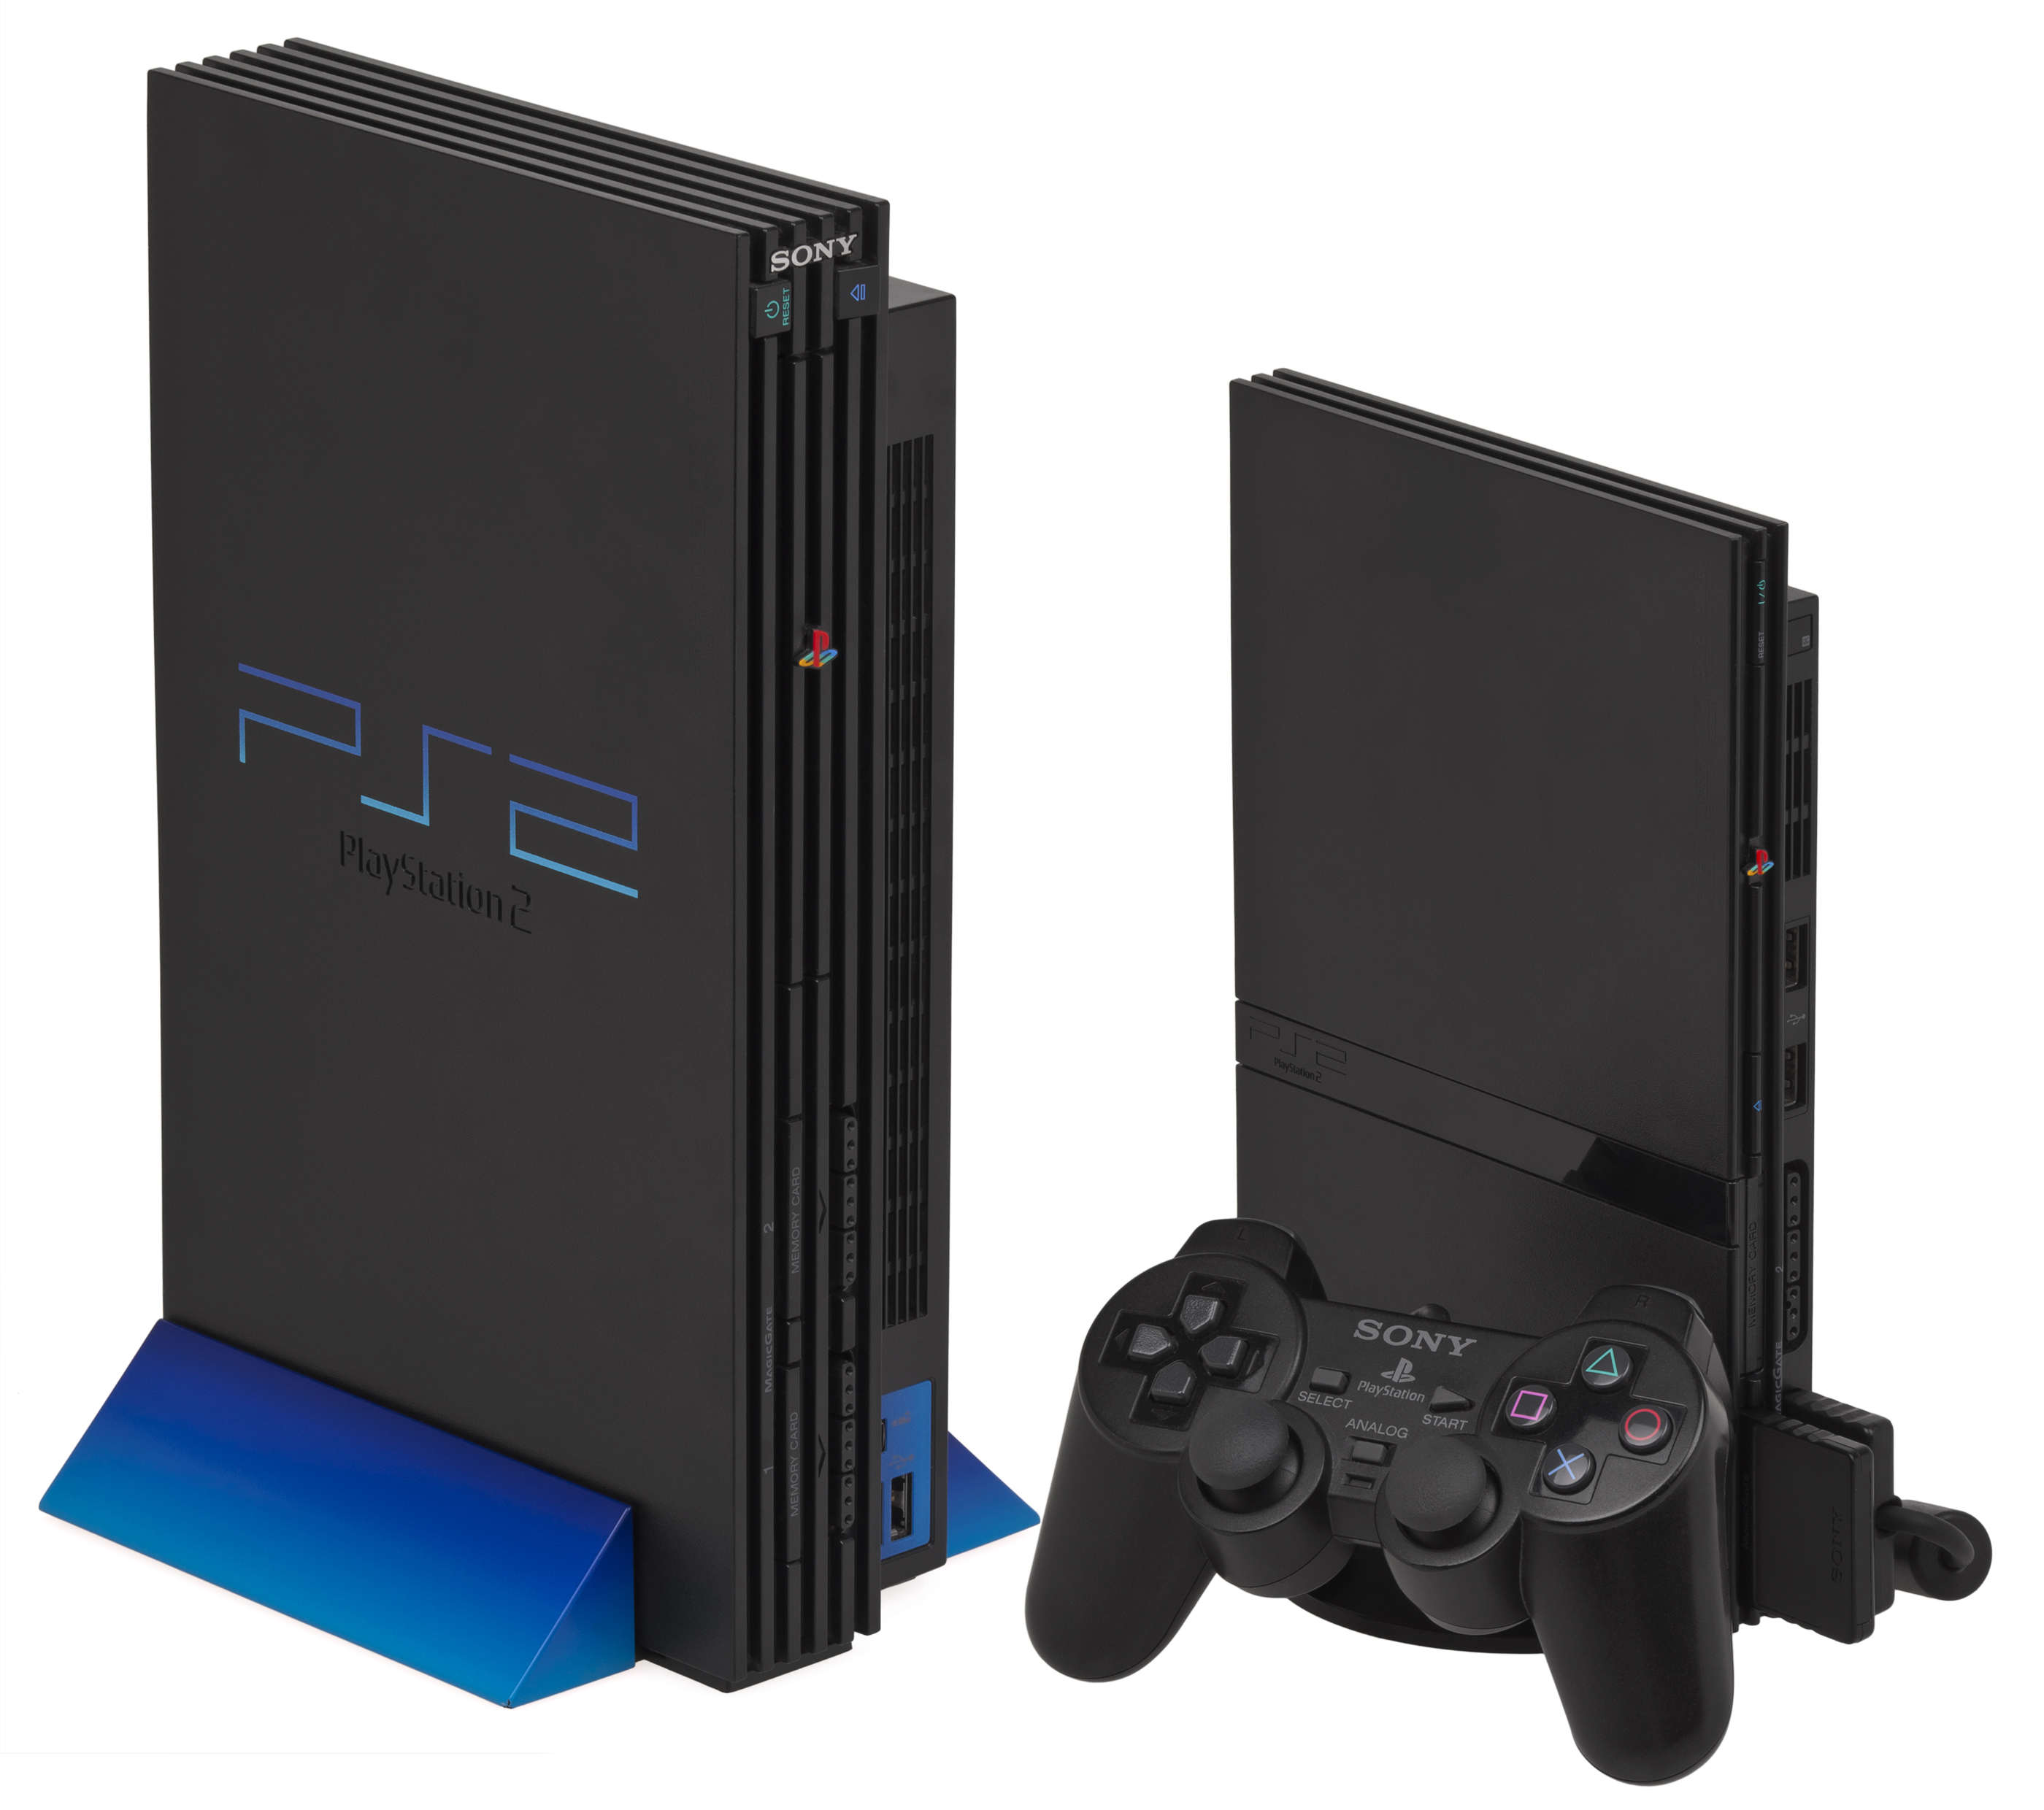 PS2-Versions